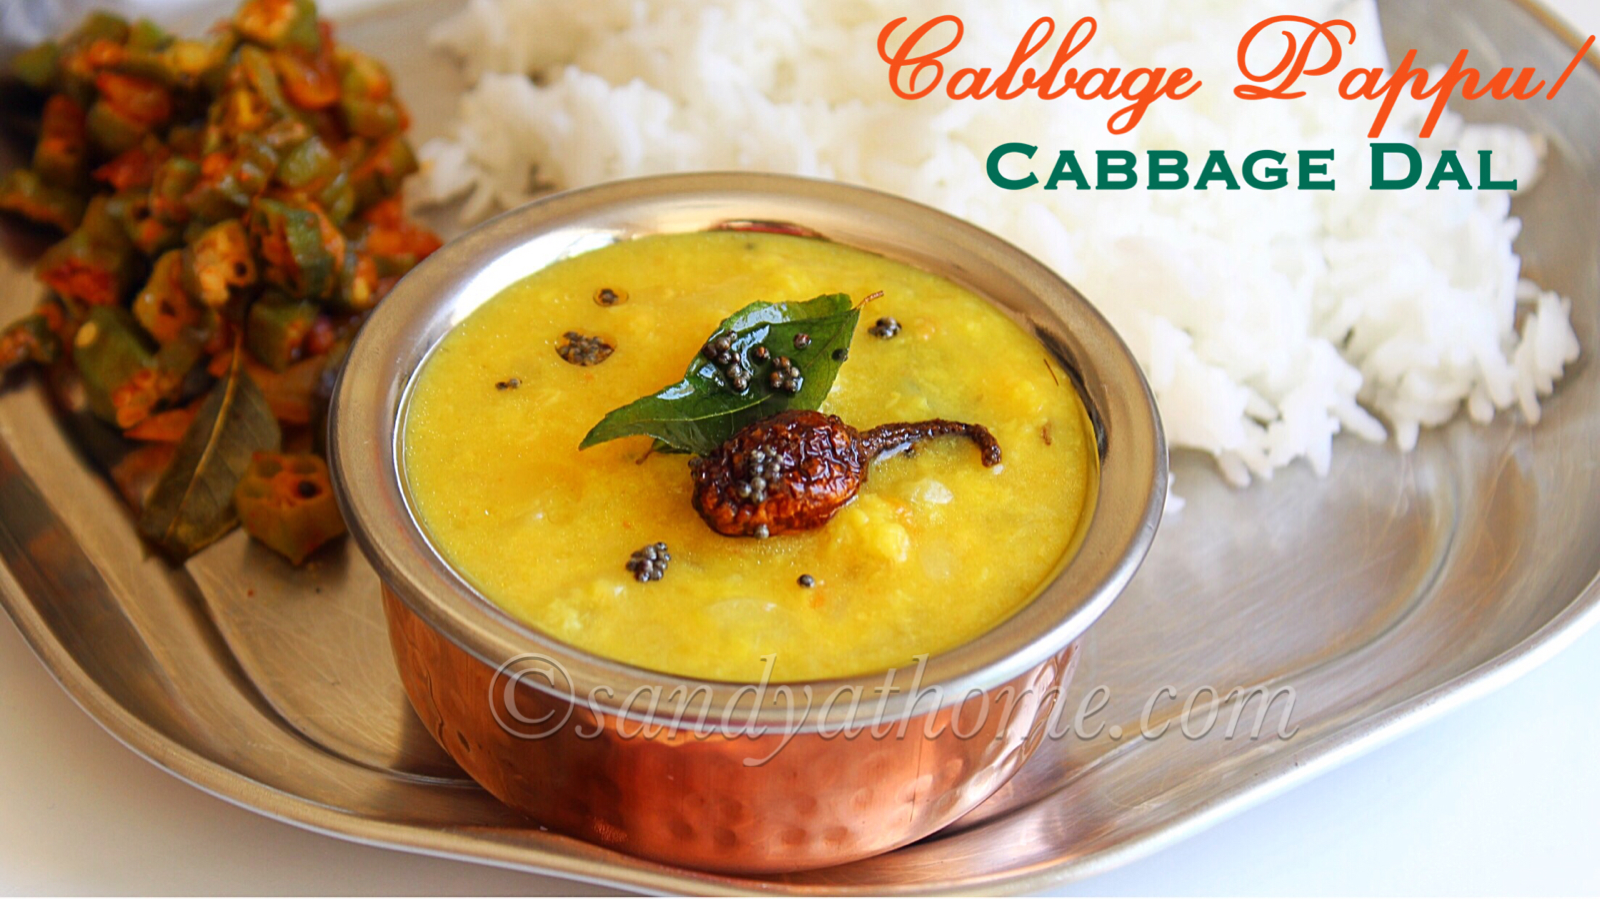 Cabbage Pappu Recipe Cabbage Dal How To Make Cabbage Pappu Sandhya S Recipes